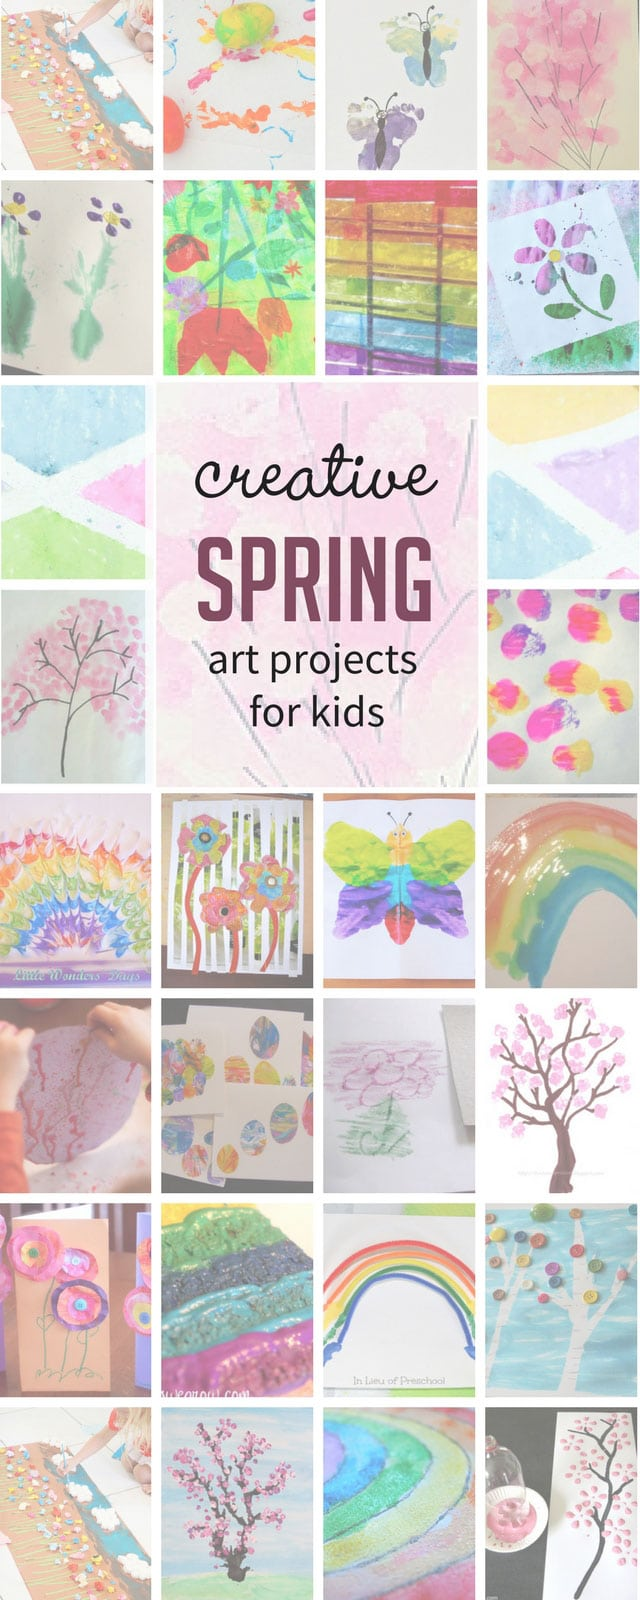 Art And Craft For Preschool 27 Colorful Spring Art Projects For Kids Hands On As We Grow